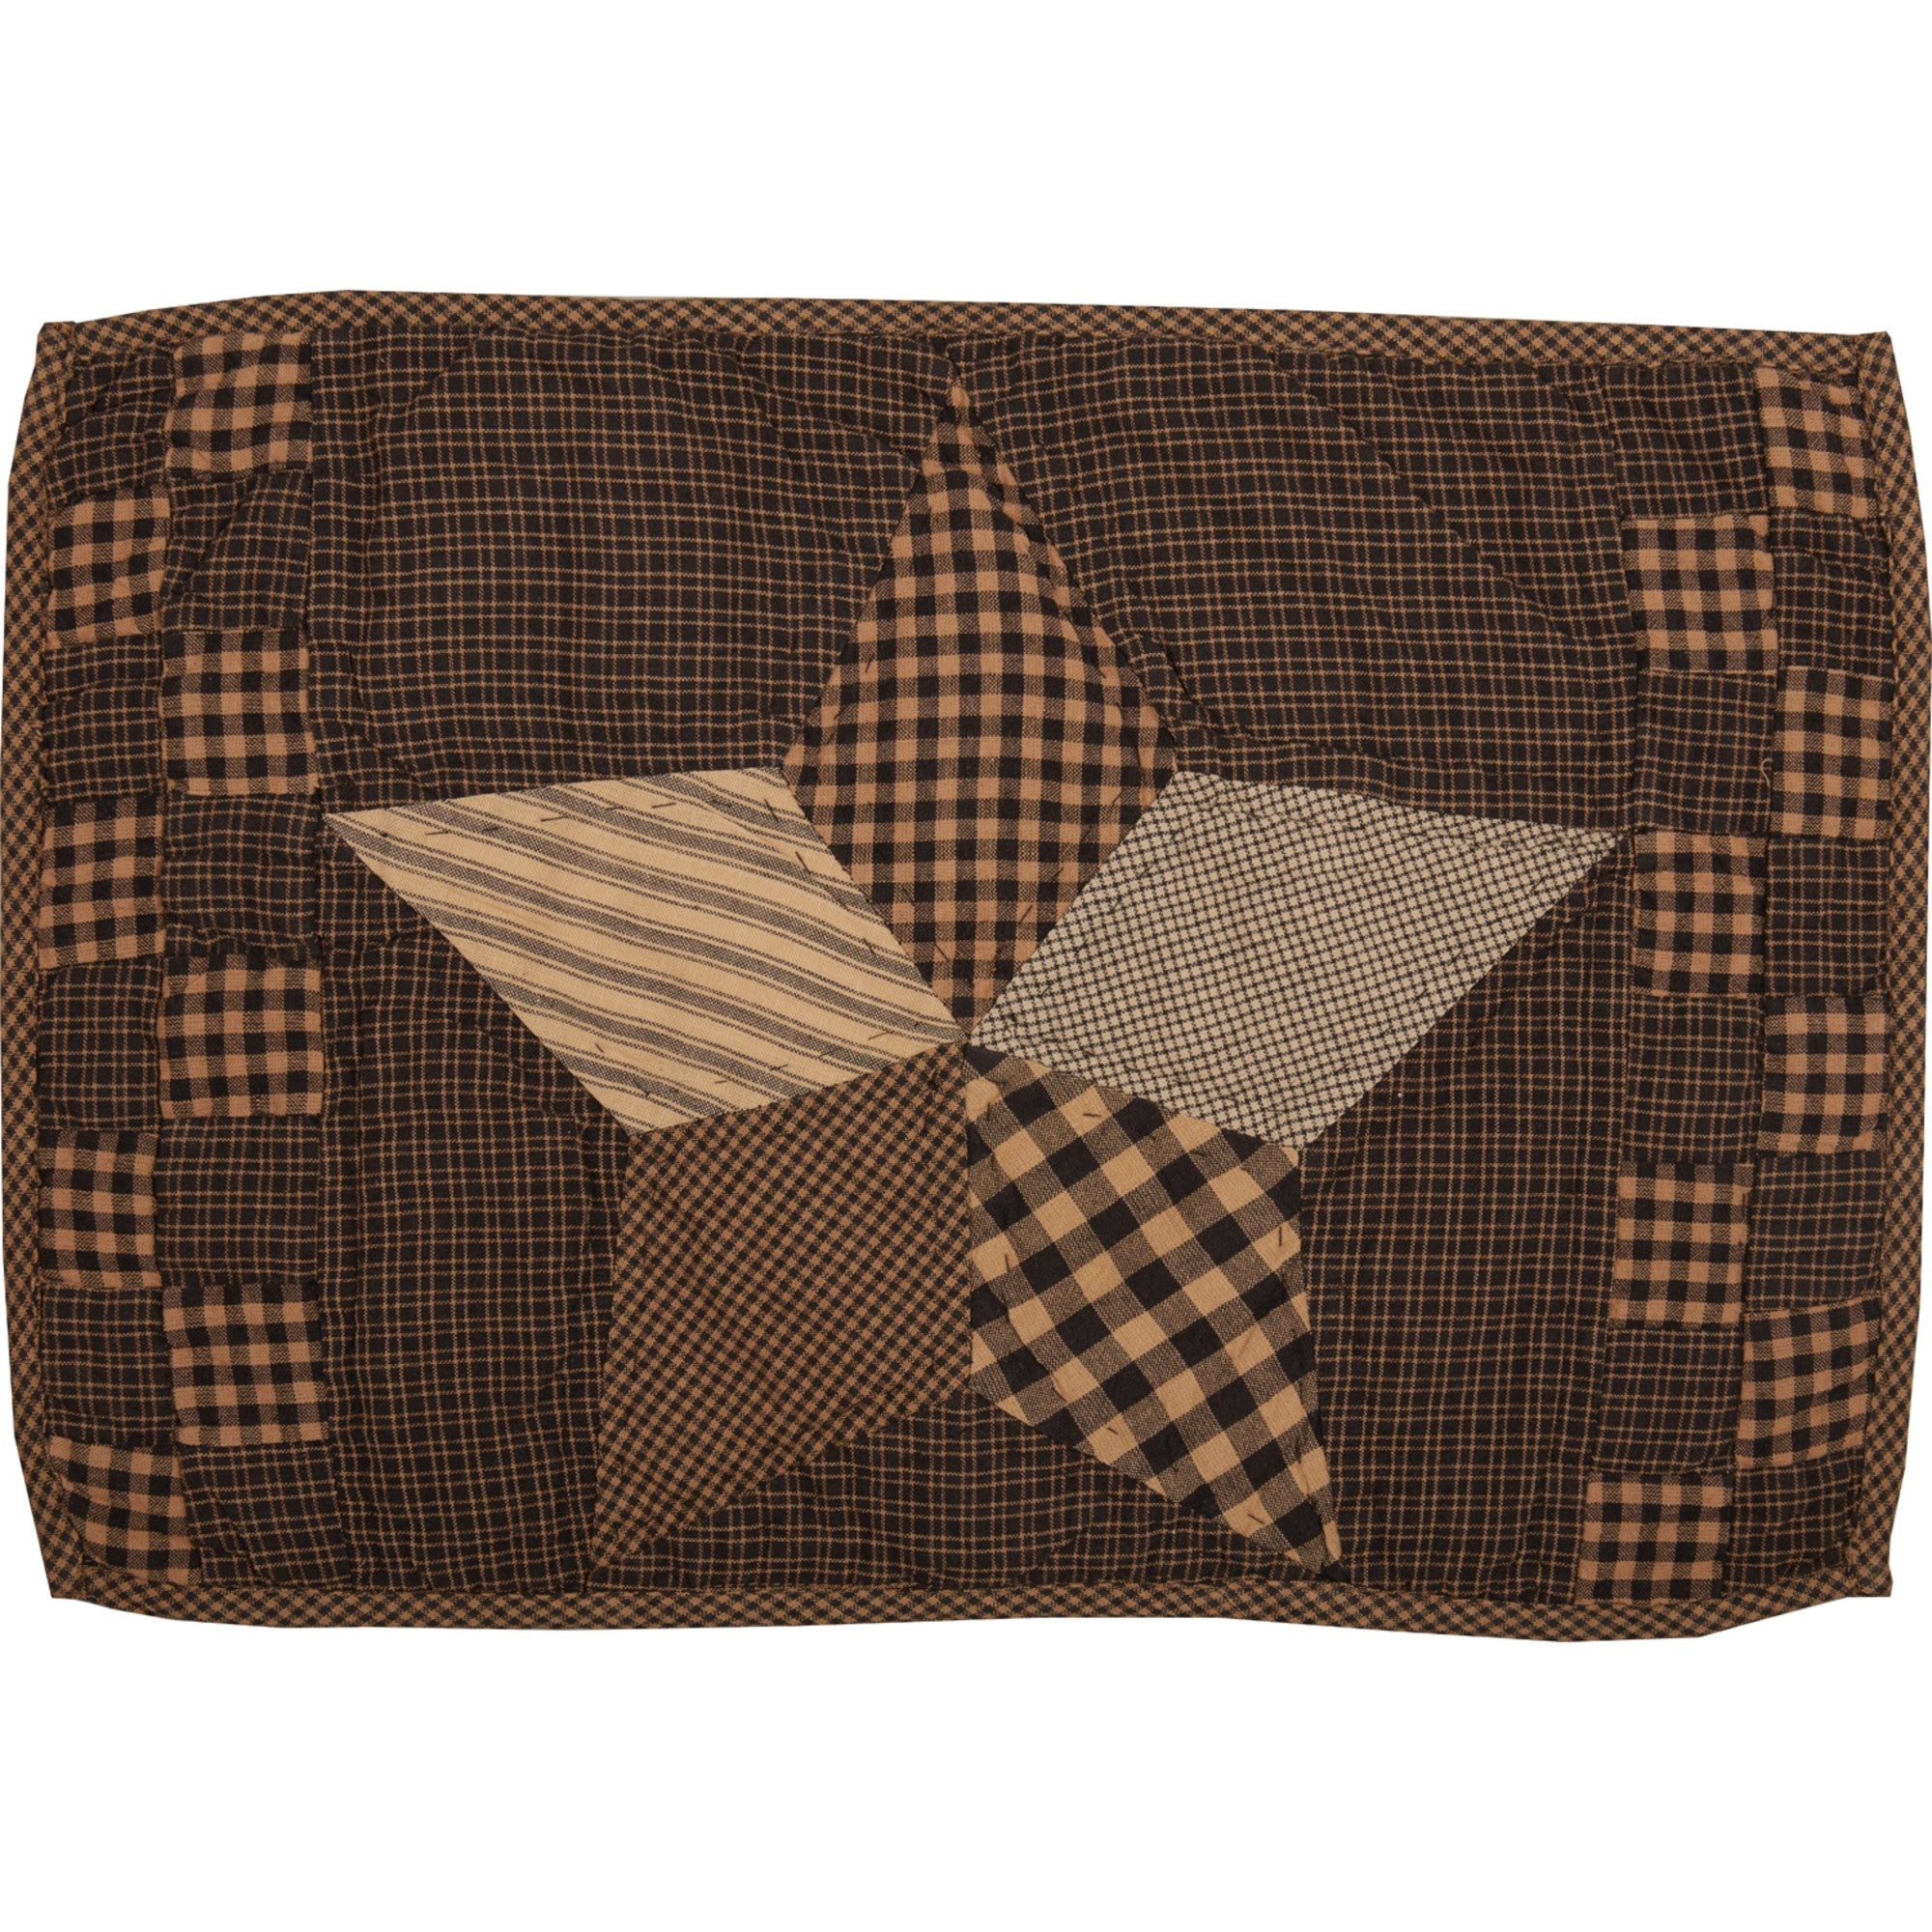 Farmhouse Star Placemat Quilted Set Of 6 12x18 Placemat 12x18 Overstock 17931408